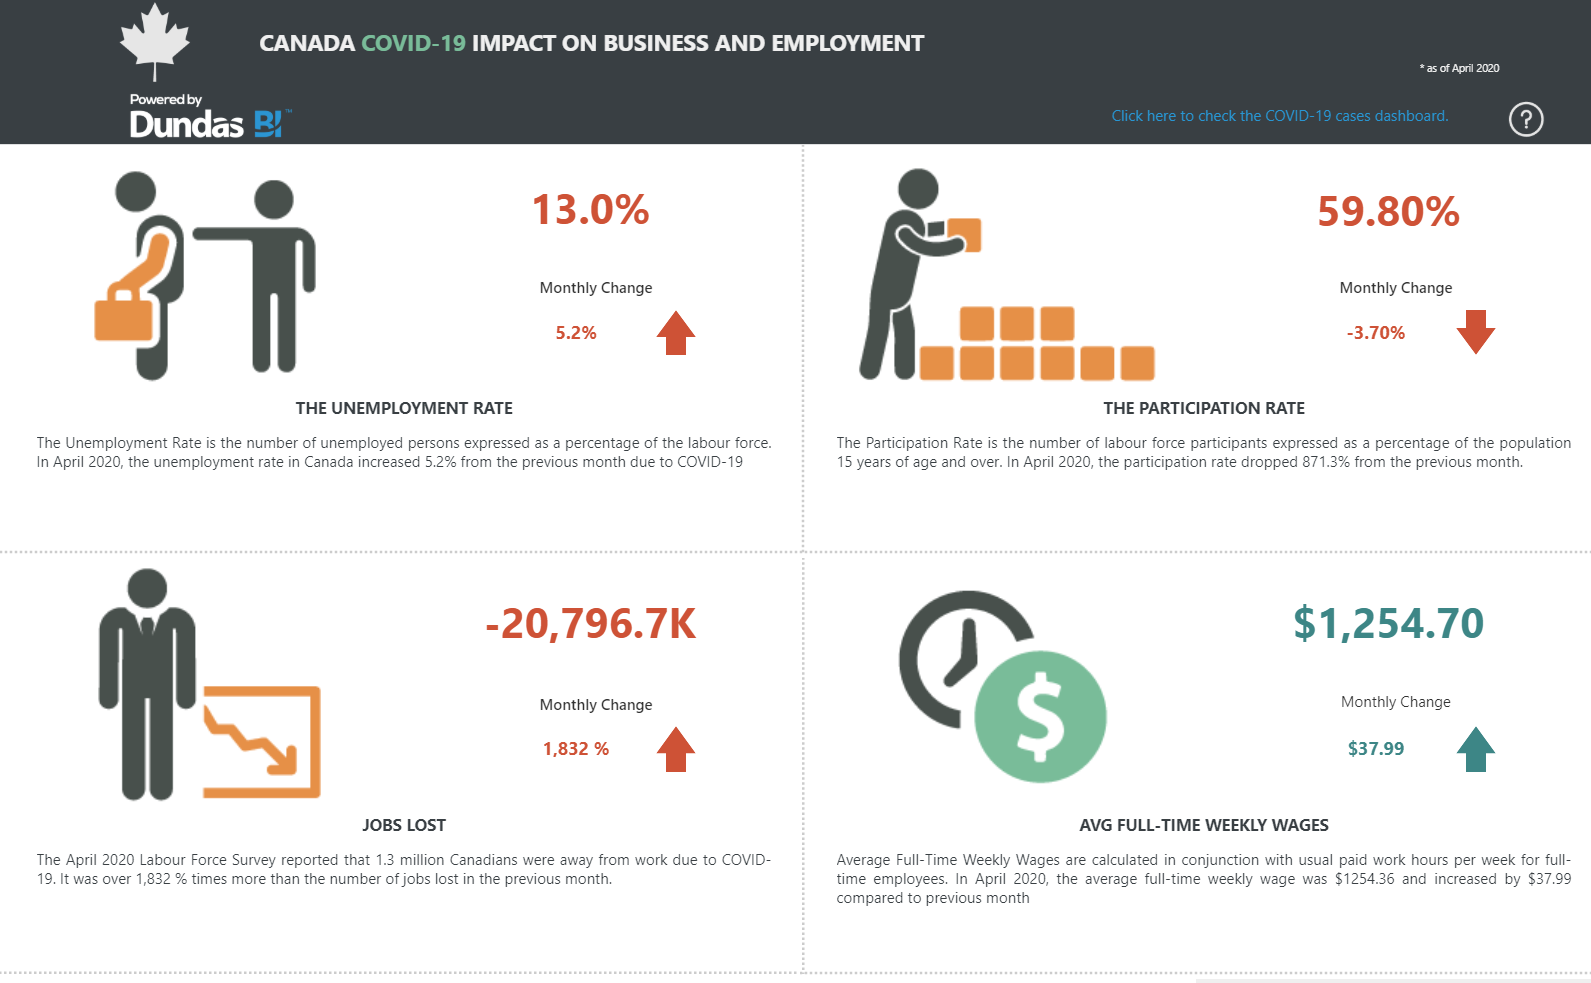 COVID-19 - Impact on Canadian Business and Employment Dashboard